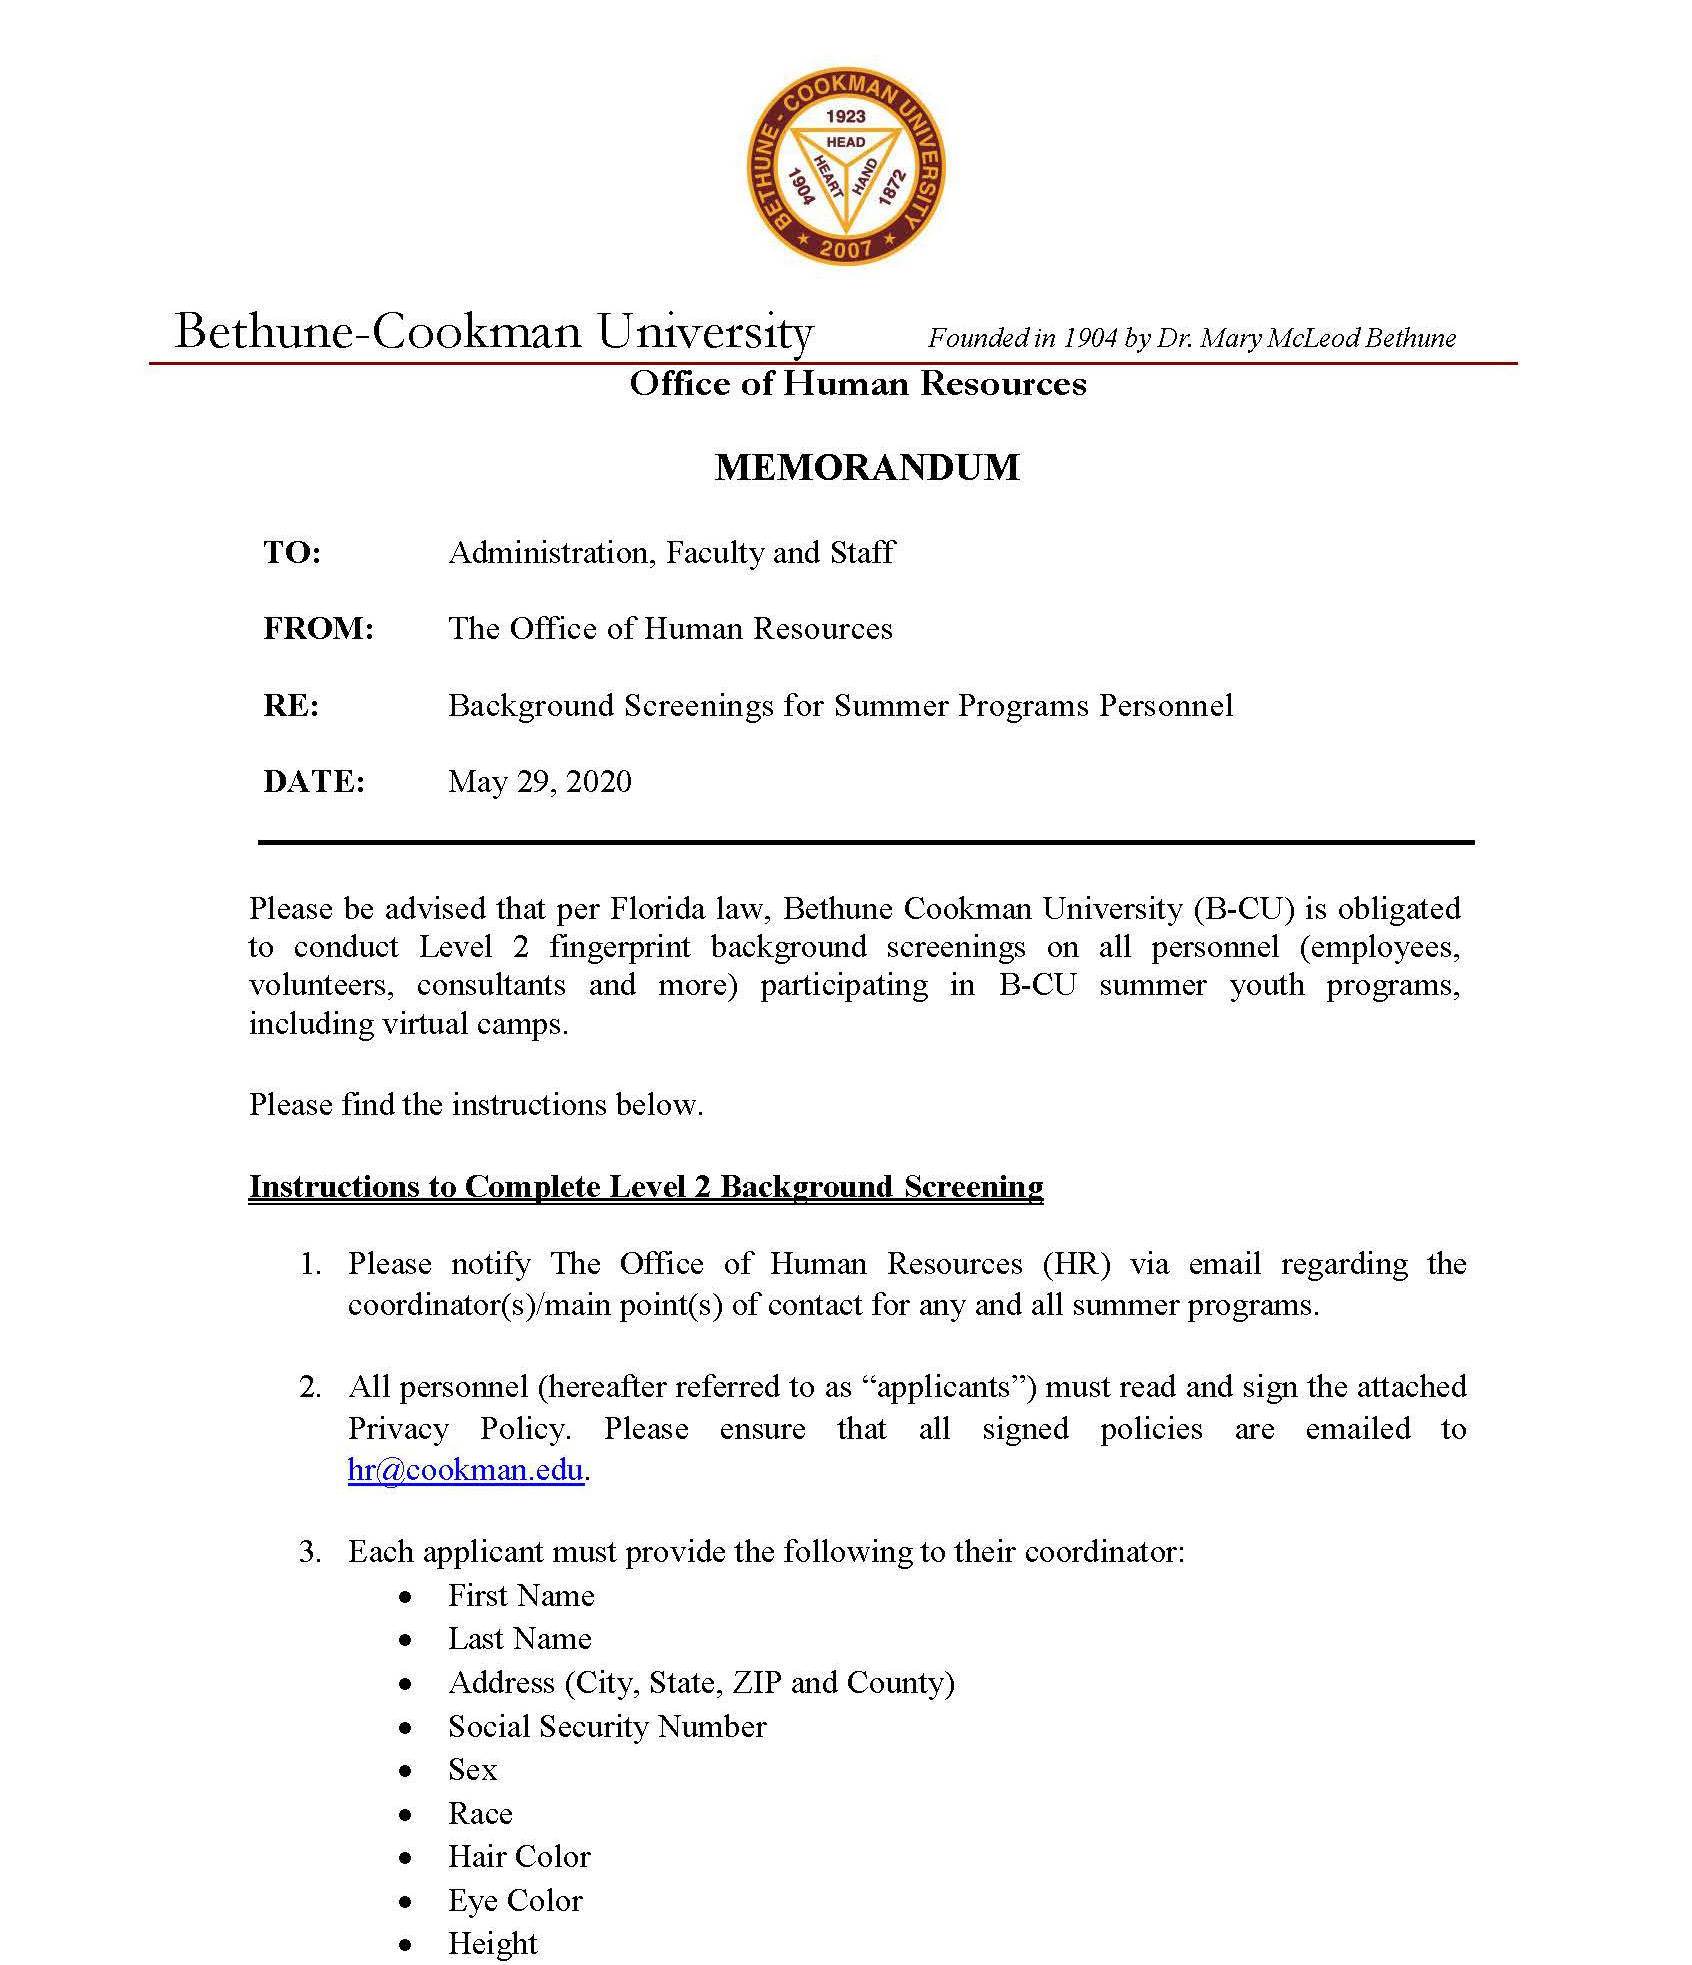 Memo_Summer_Program_Personnel_Page_1